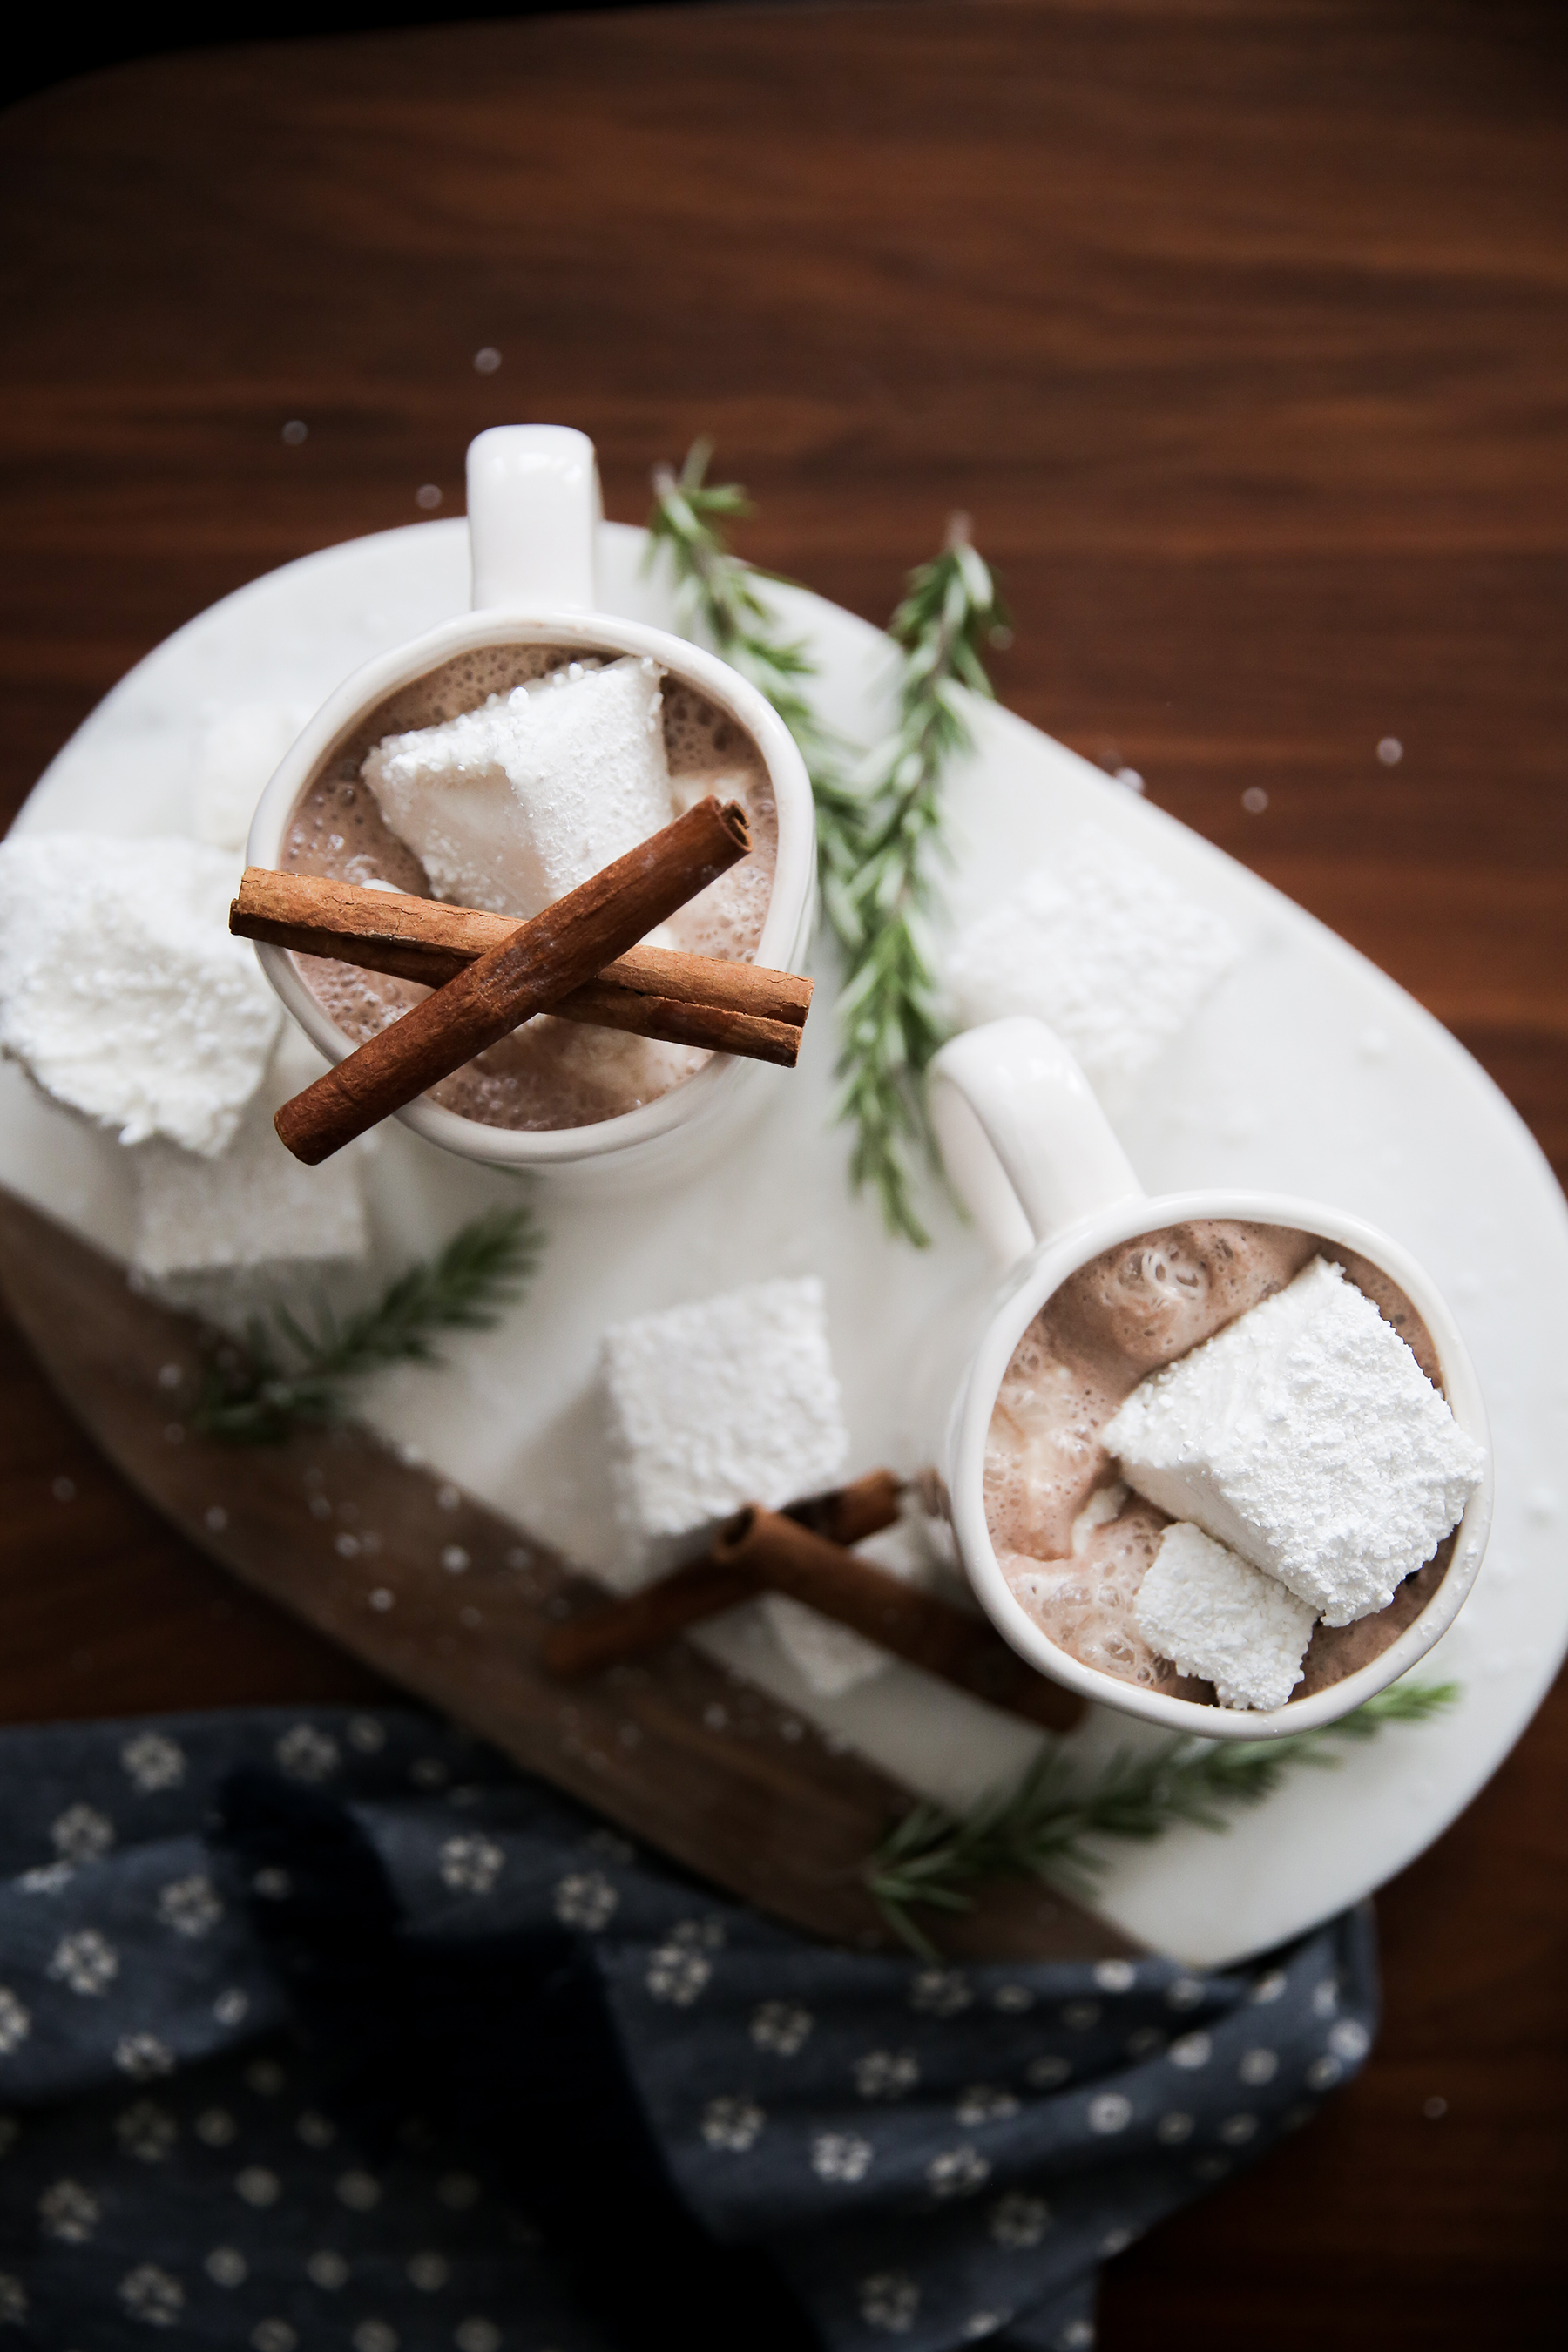 cozy holiday shoot, hot cocoa, plaid, cozy outfit, cute glasses, nude nails, hot chocolate with marshmallows, homemade marshmallows, photos by Andrea Posadas of Amanda Holstein for Advicefroma20Something.com